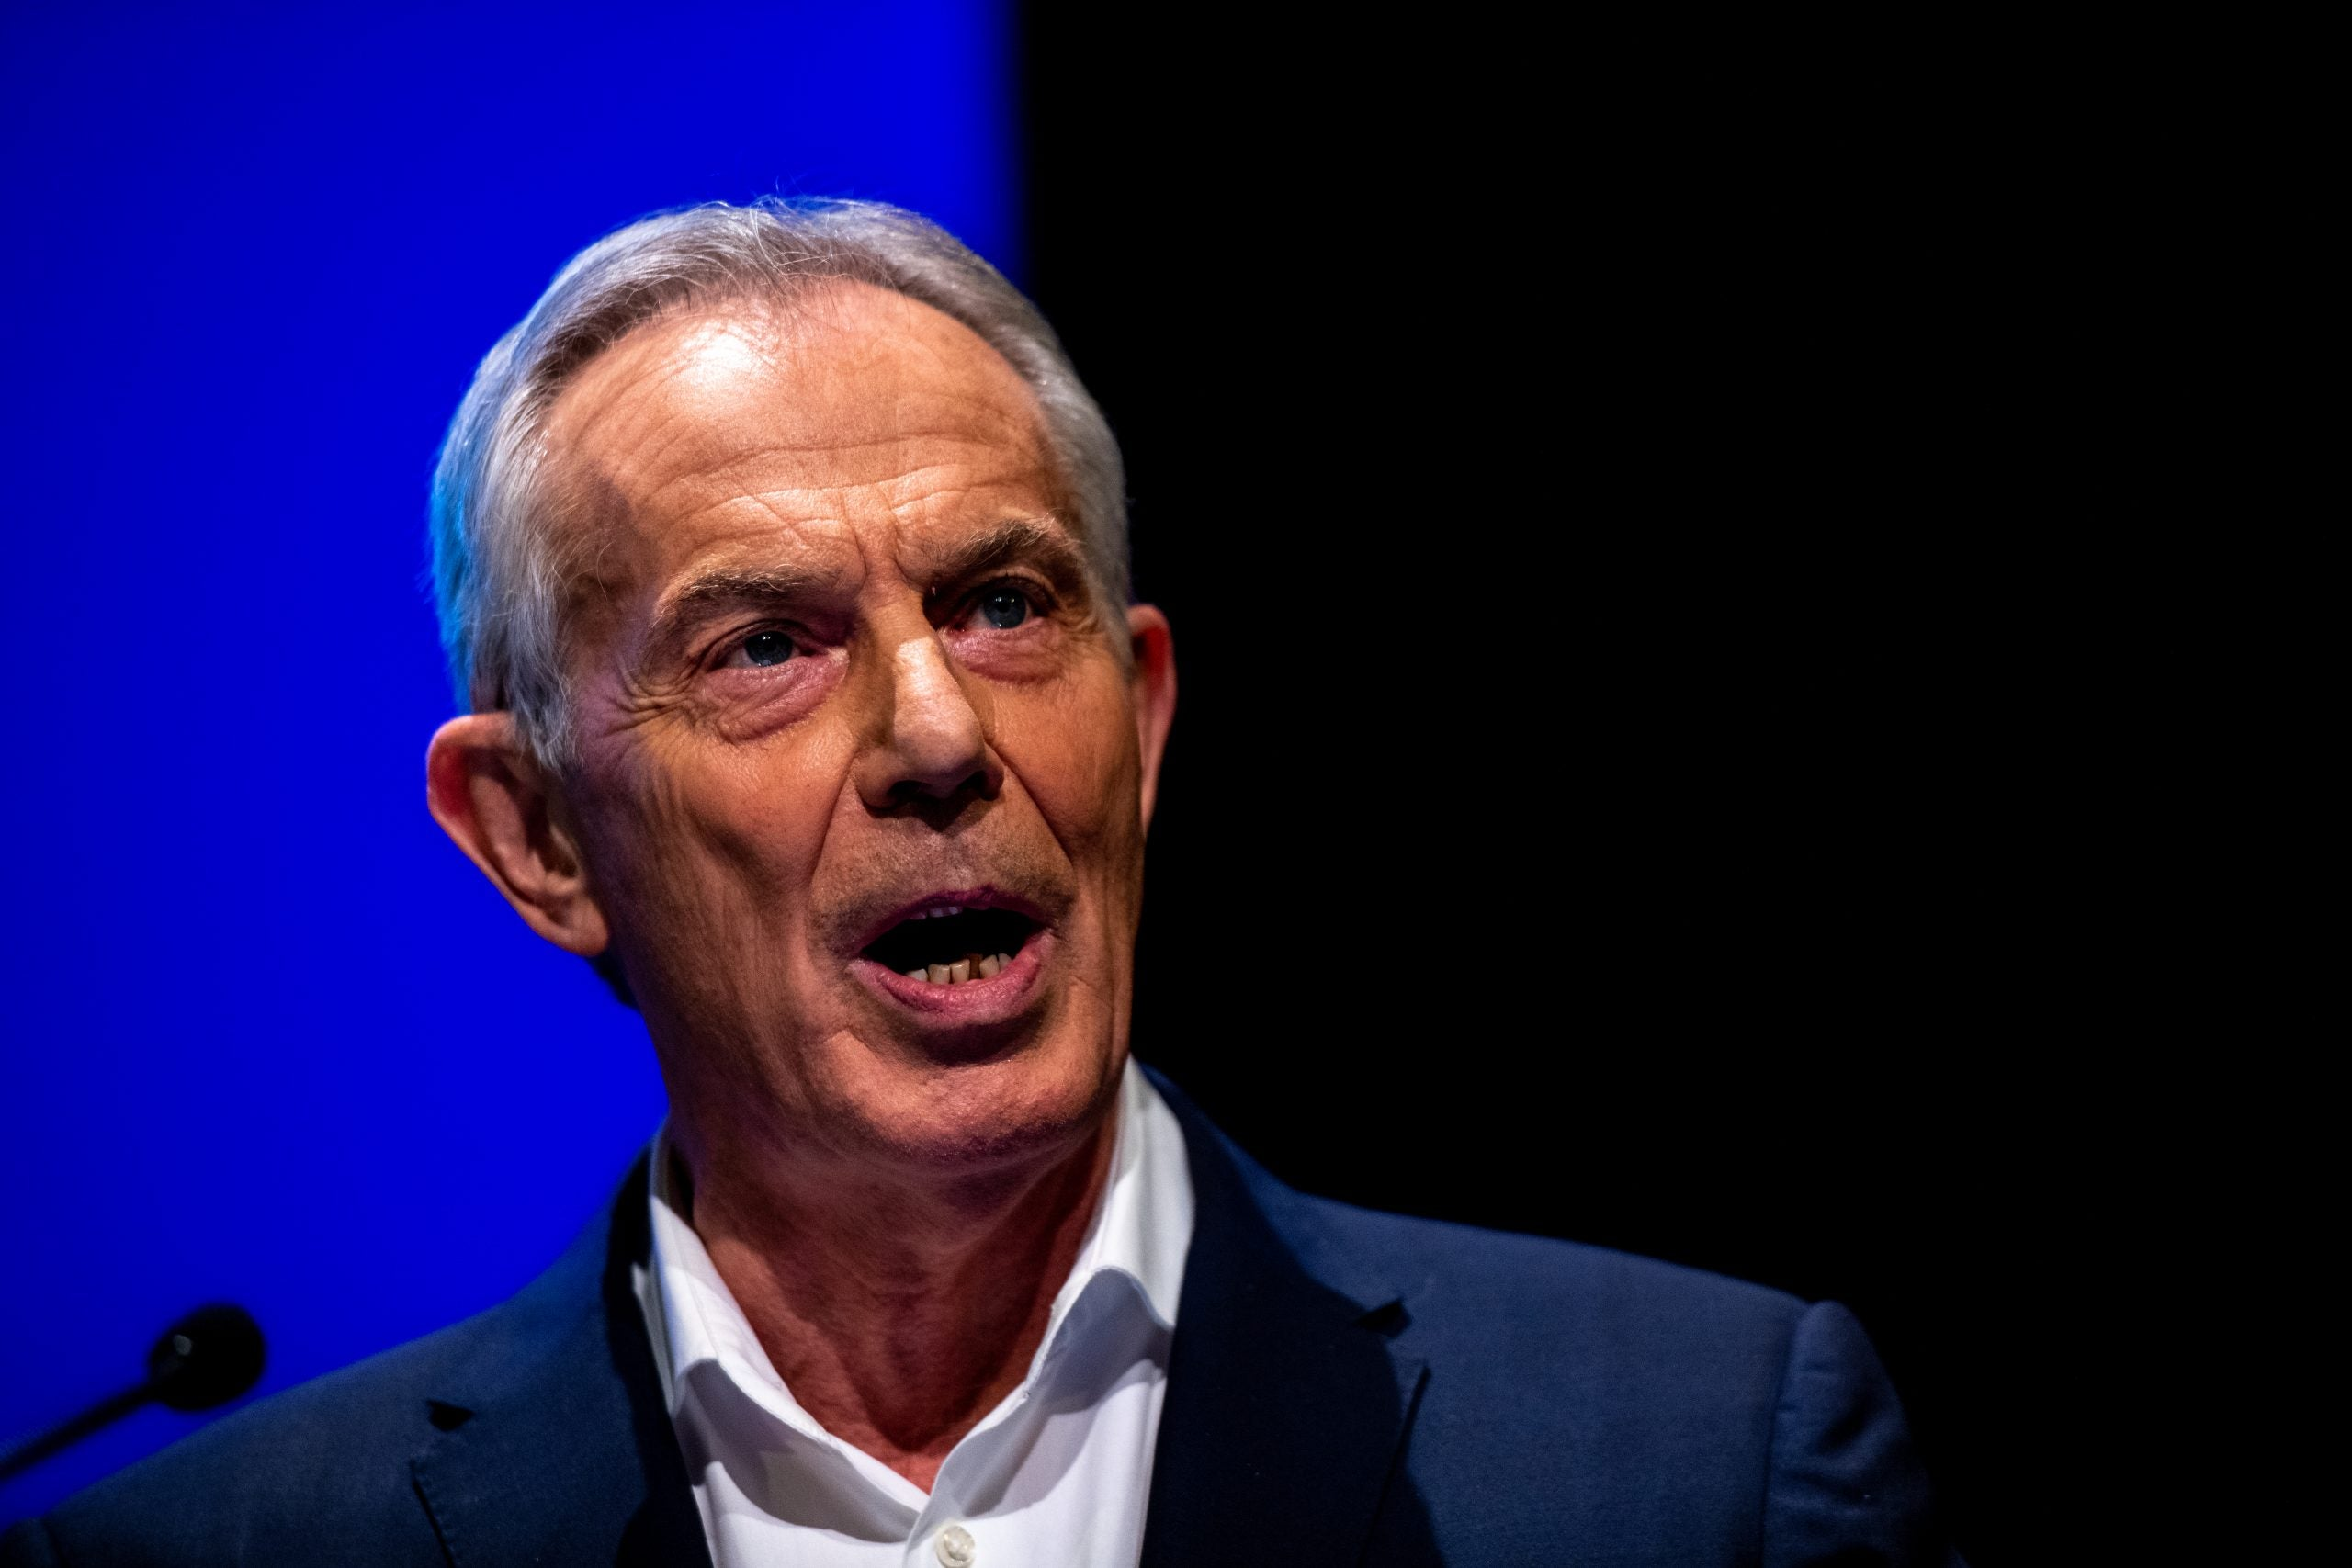 """As Tony Blair warns that Labour could die under Starmer and the """"woke left"""", is he planning a return?"""